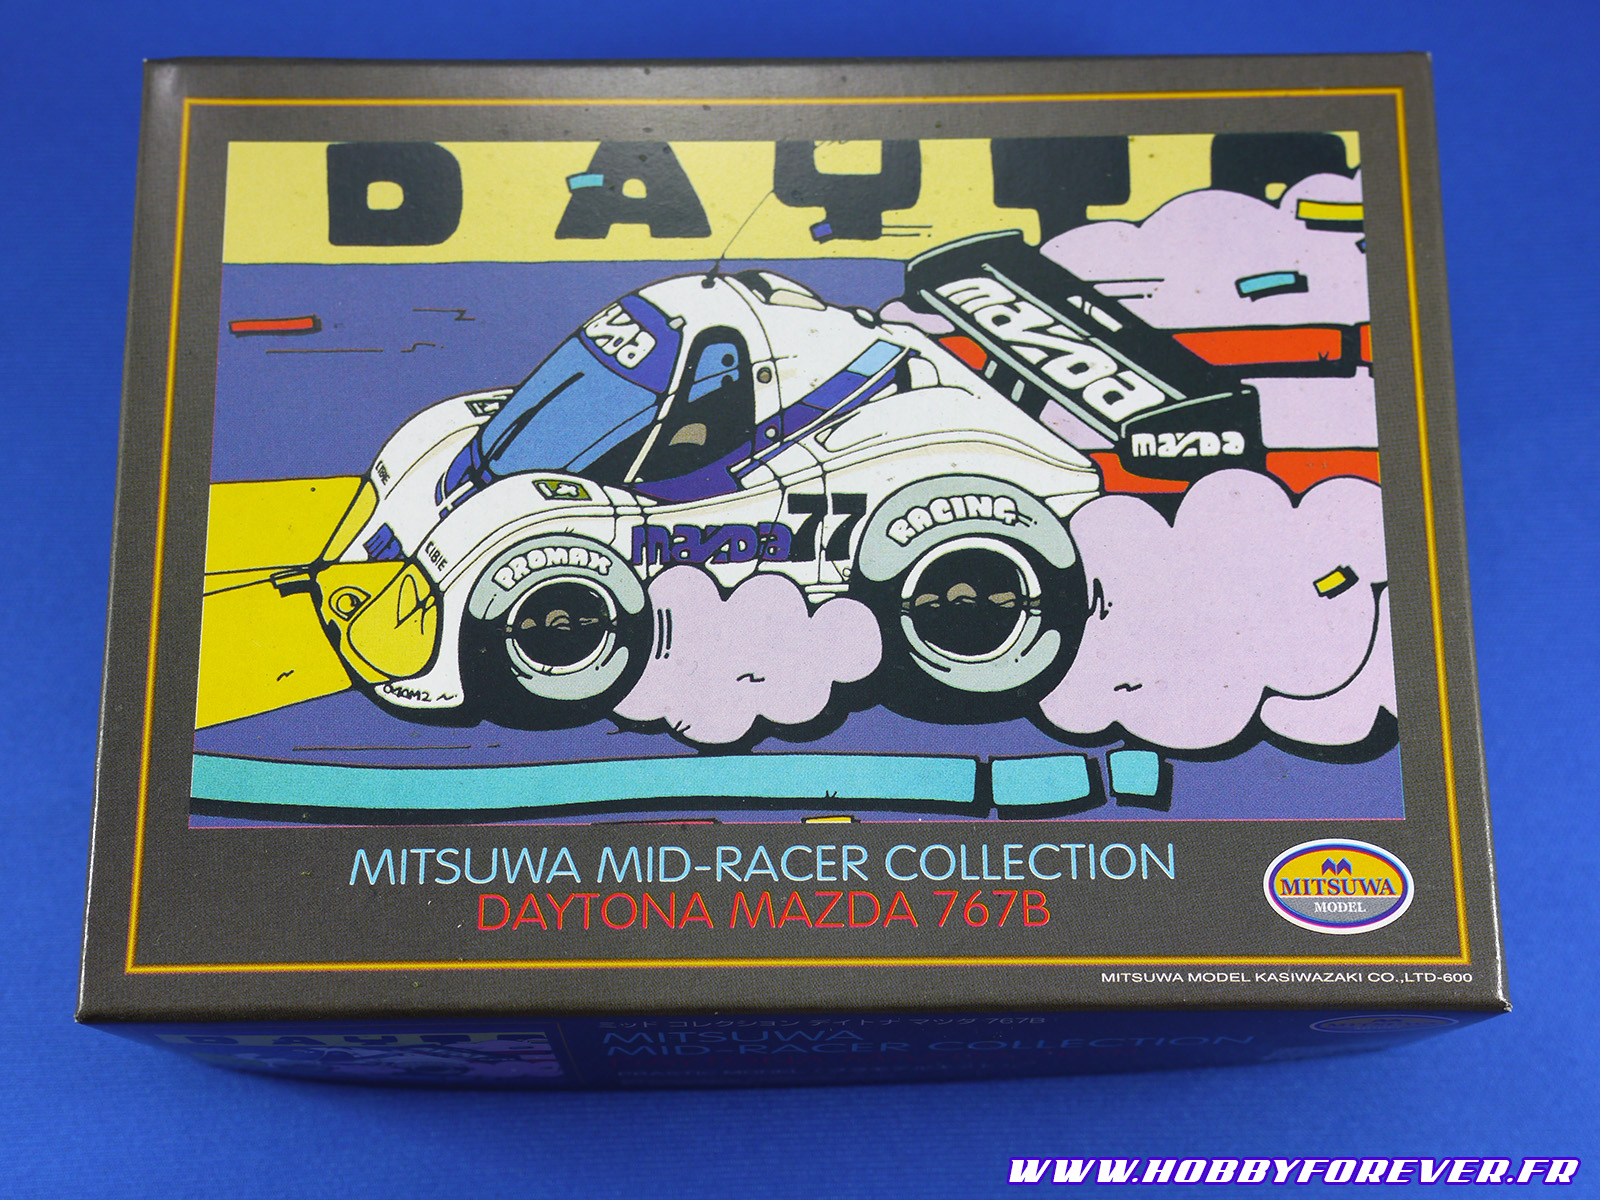 La boite de la Daytona Mazda 767B et son illustration super cool !